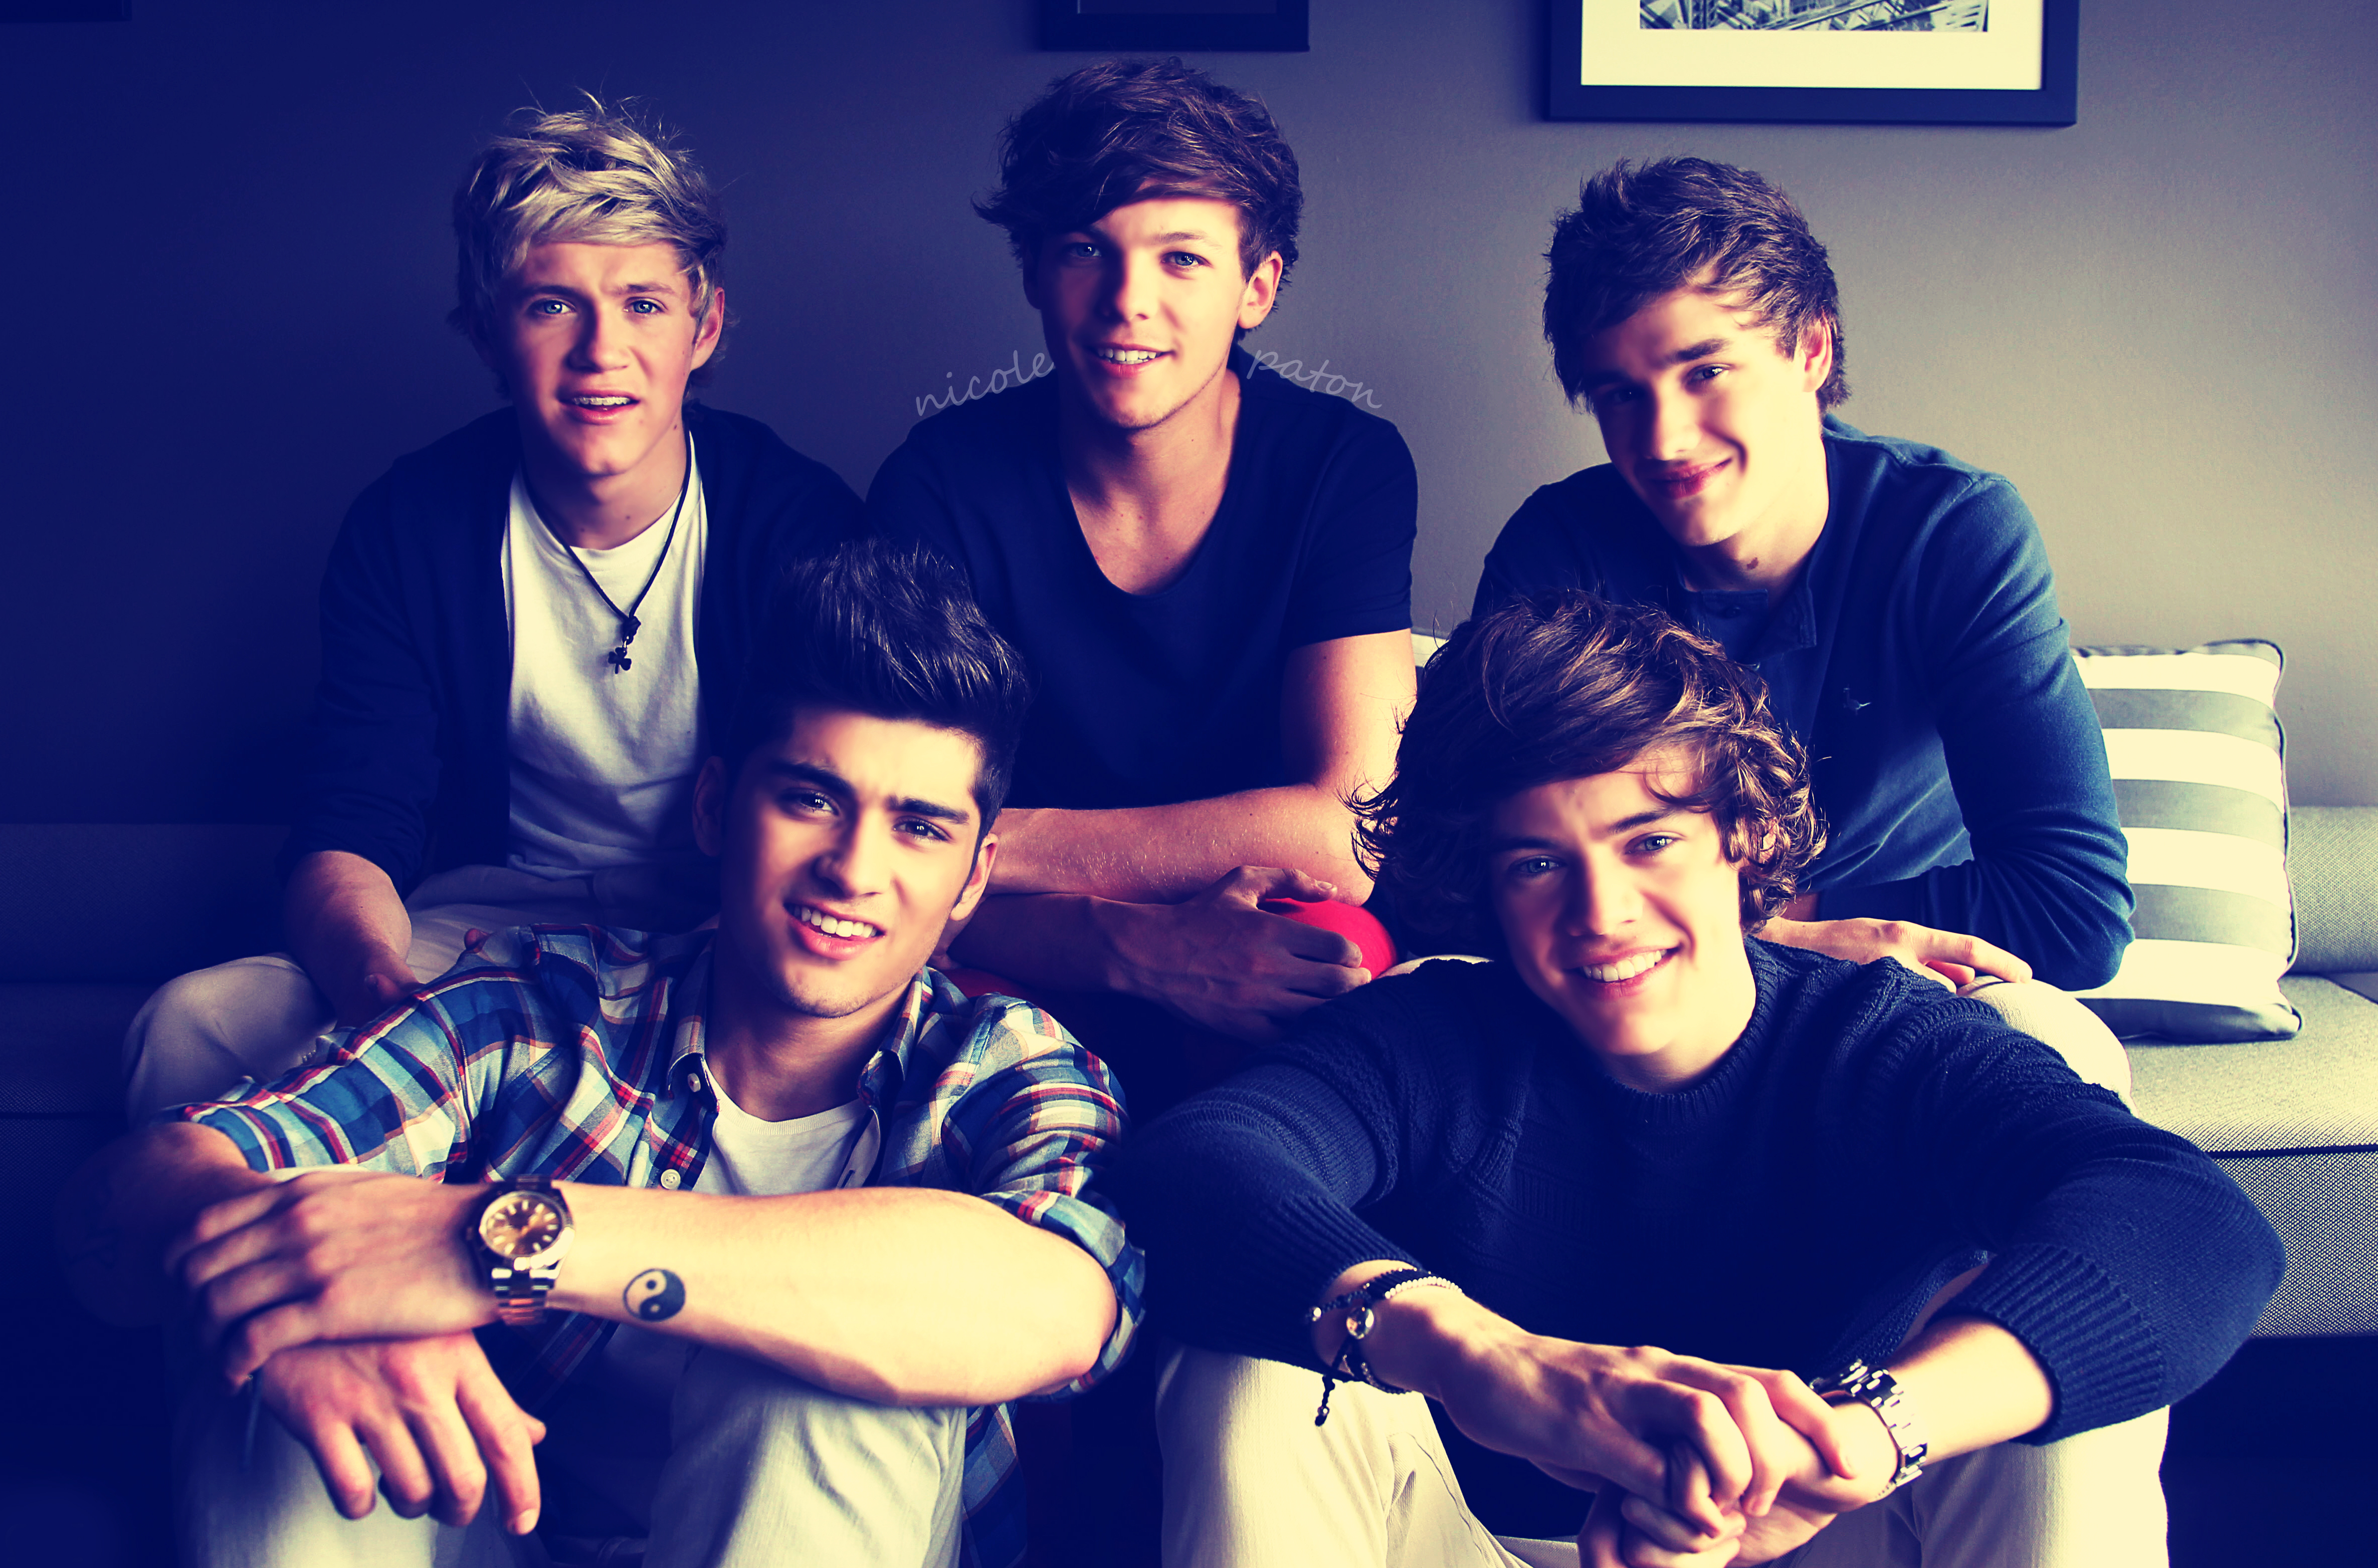 ONE DIRECTION WALLPAPERS FREE Wallpapers Background images 4768x3144